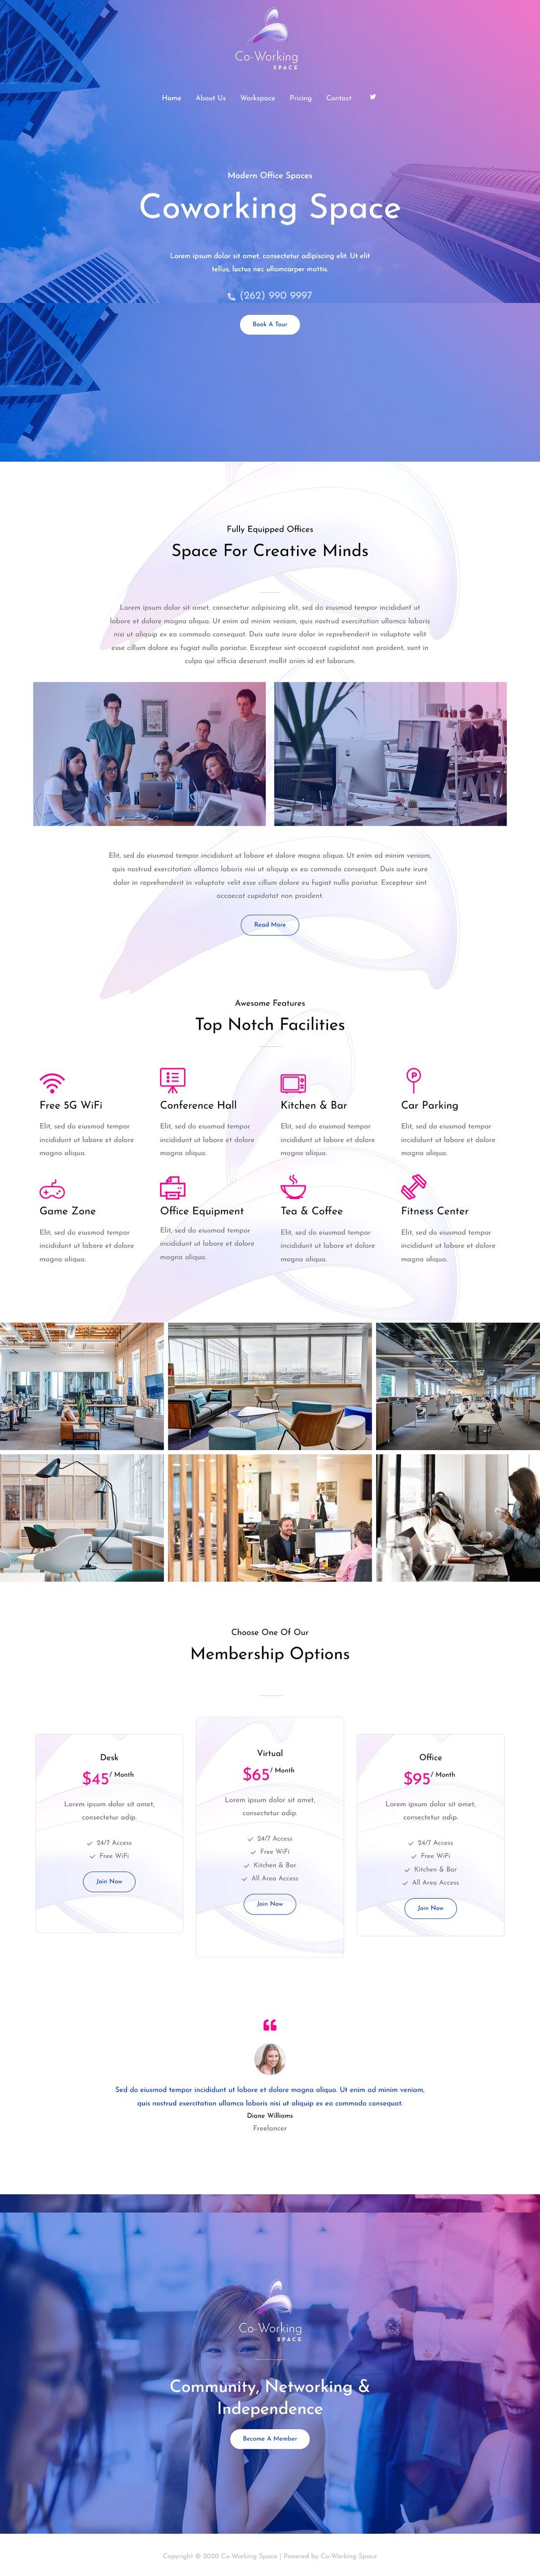 Co-Working Spaces A Home Page 1280 x 5244